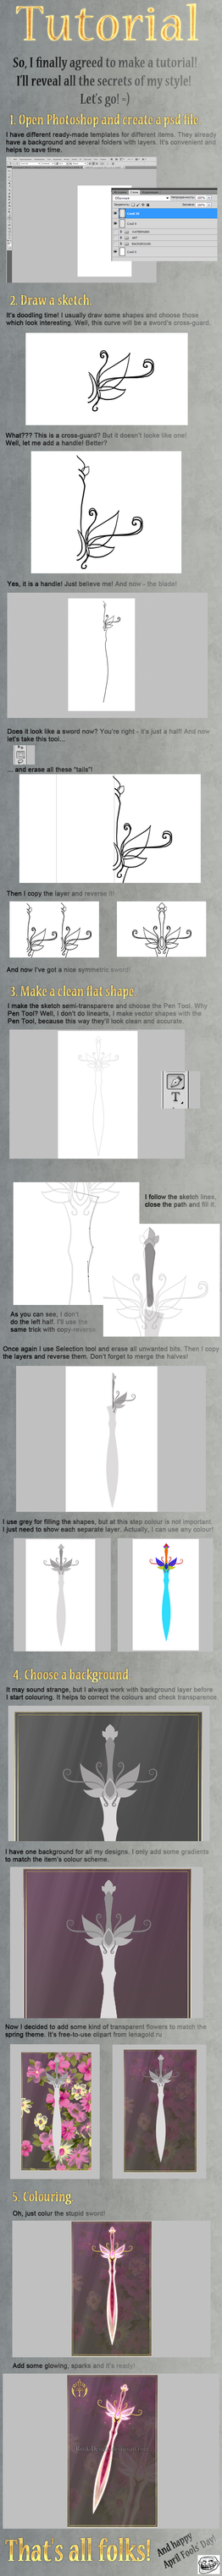 Tutorial - How to draw a sword by Rittik-Designs